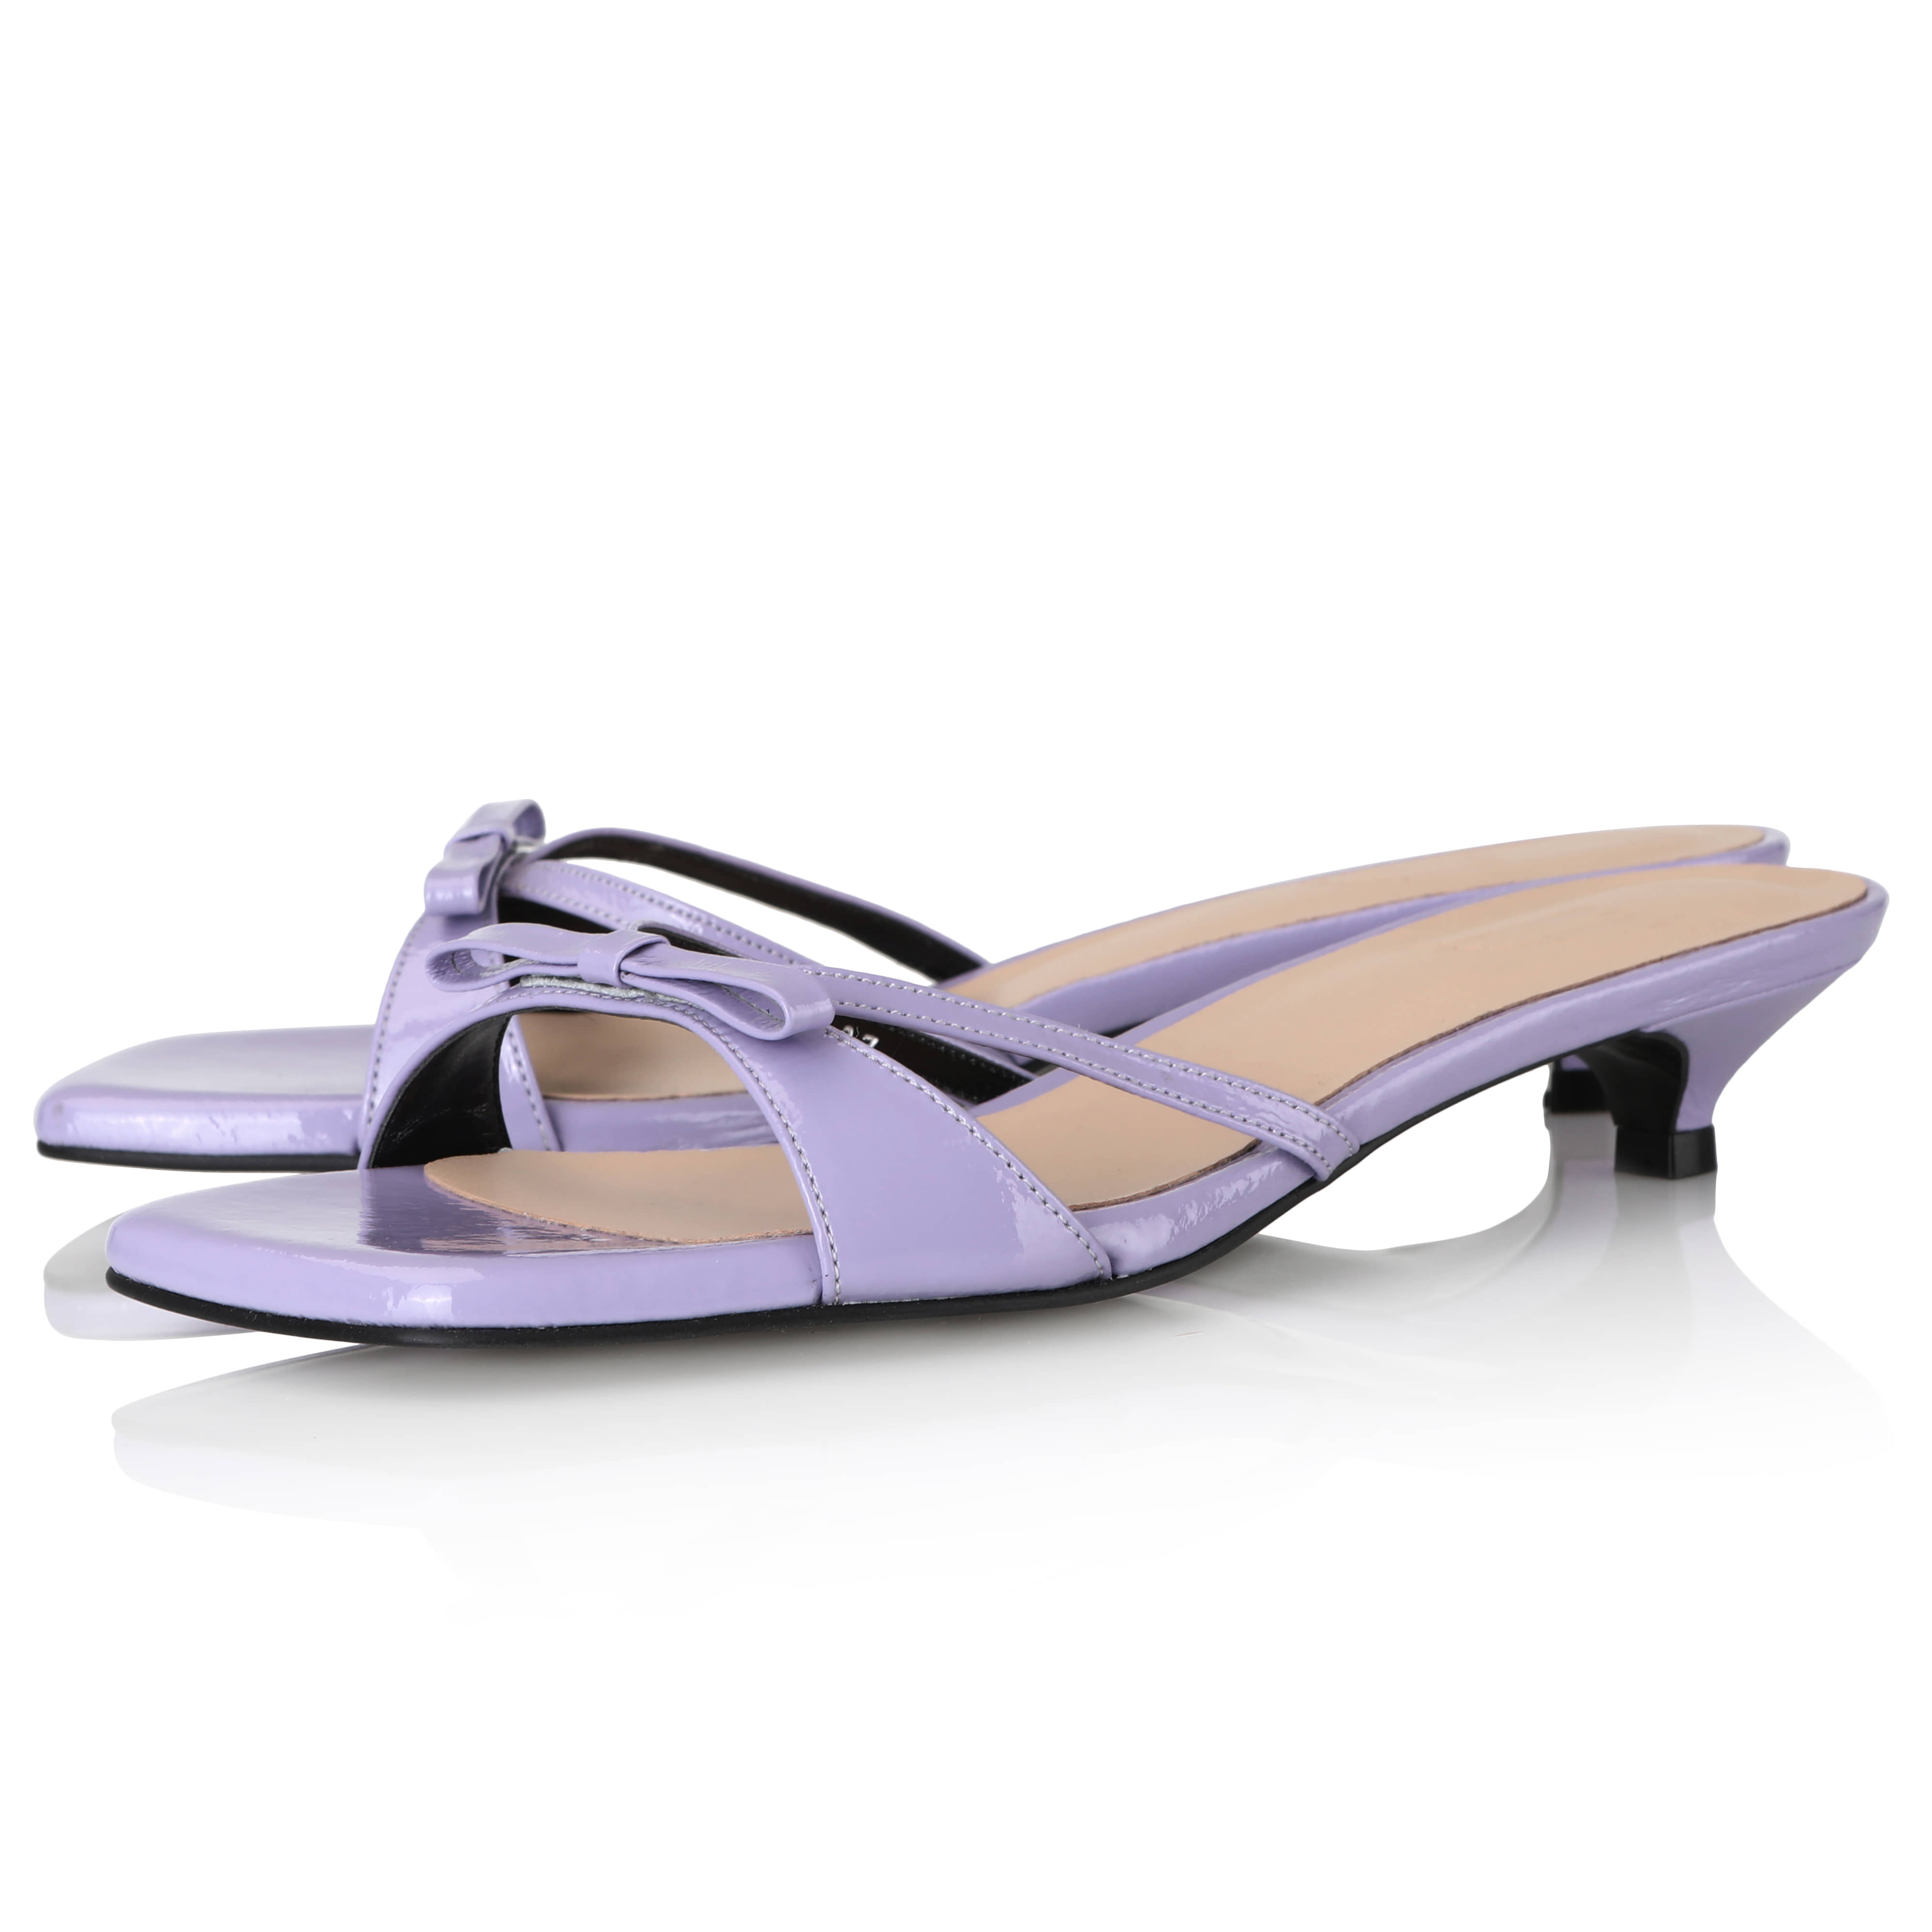 Y.01 Jane Candy Kitten Mules / YY20S-S44 / Lilac